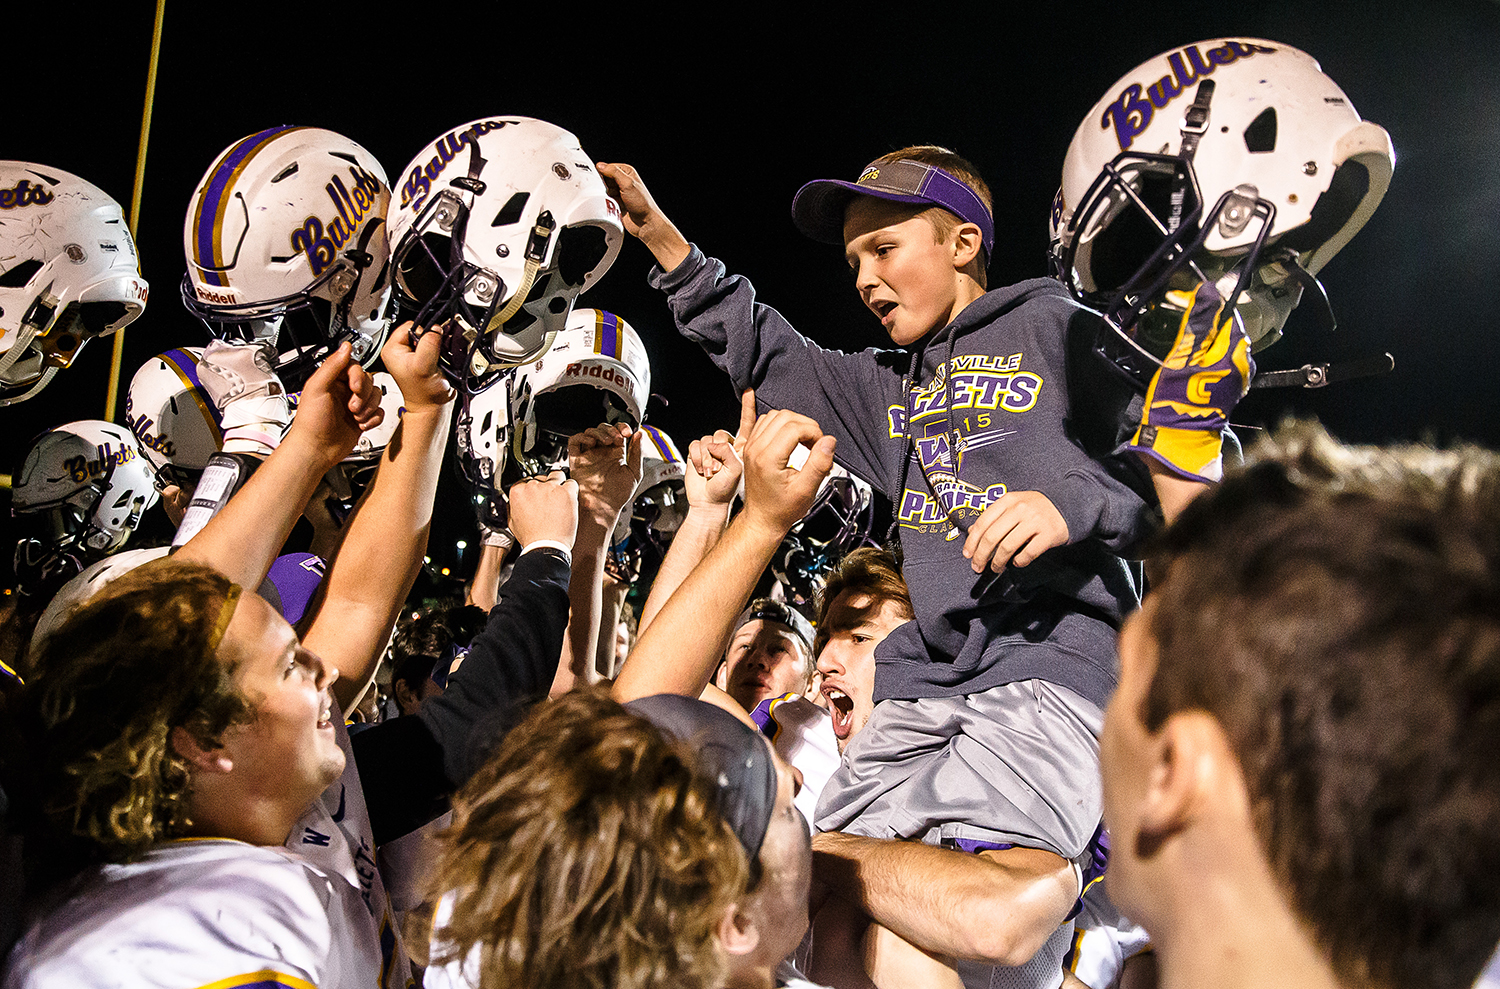 Seth Kunz, the son of Williamsville head football coach Aaron Kunz, is hoisted by the team when they celebrate an undefeated regular season record Oct. 20. The Bullets had just defeated Athens 28-0. Justin L. Fowler/The State Journal-Register